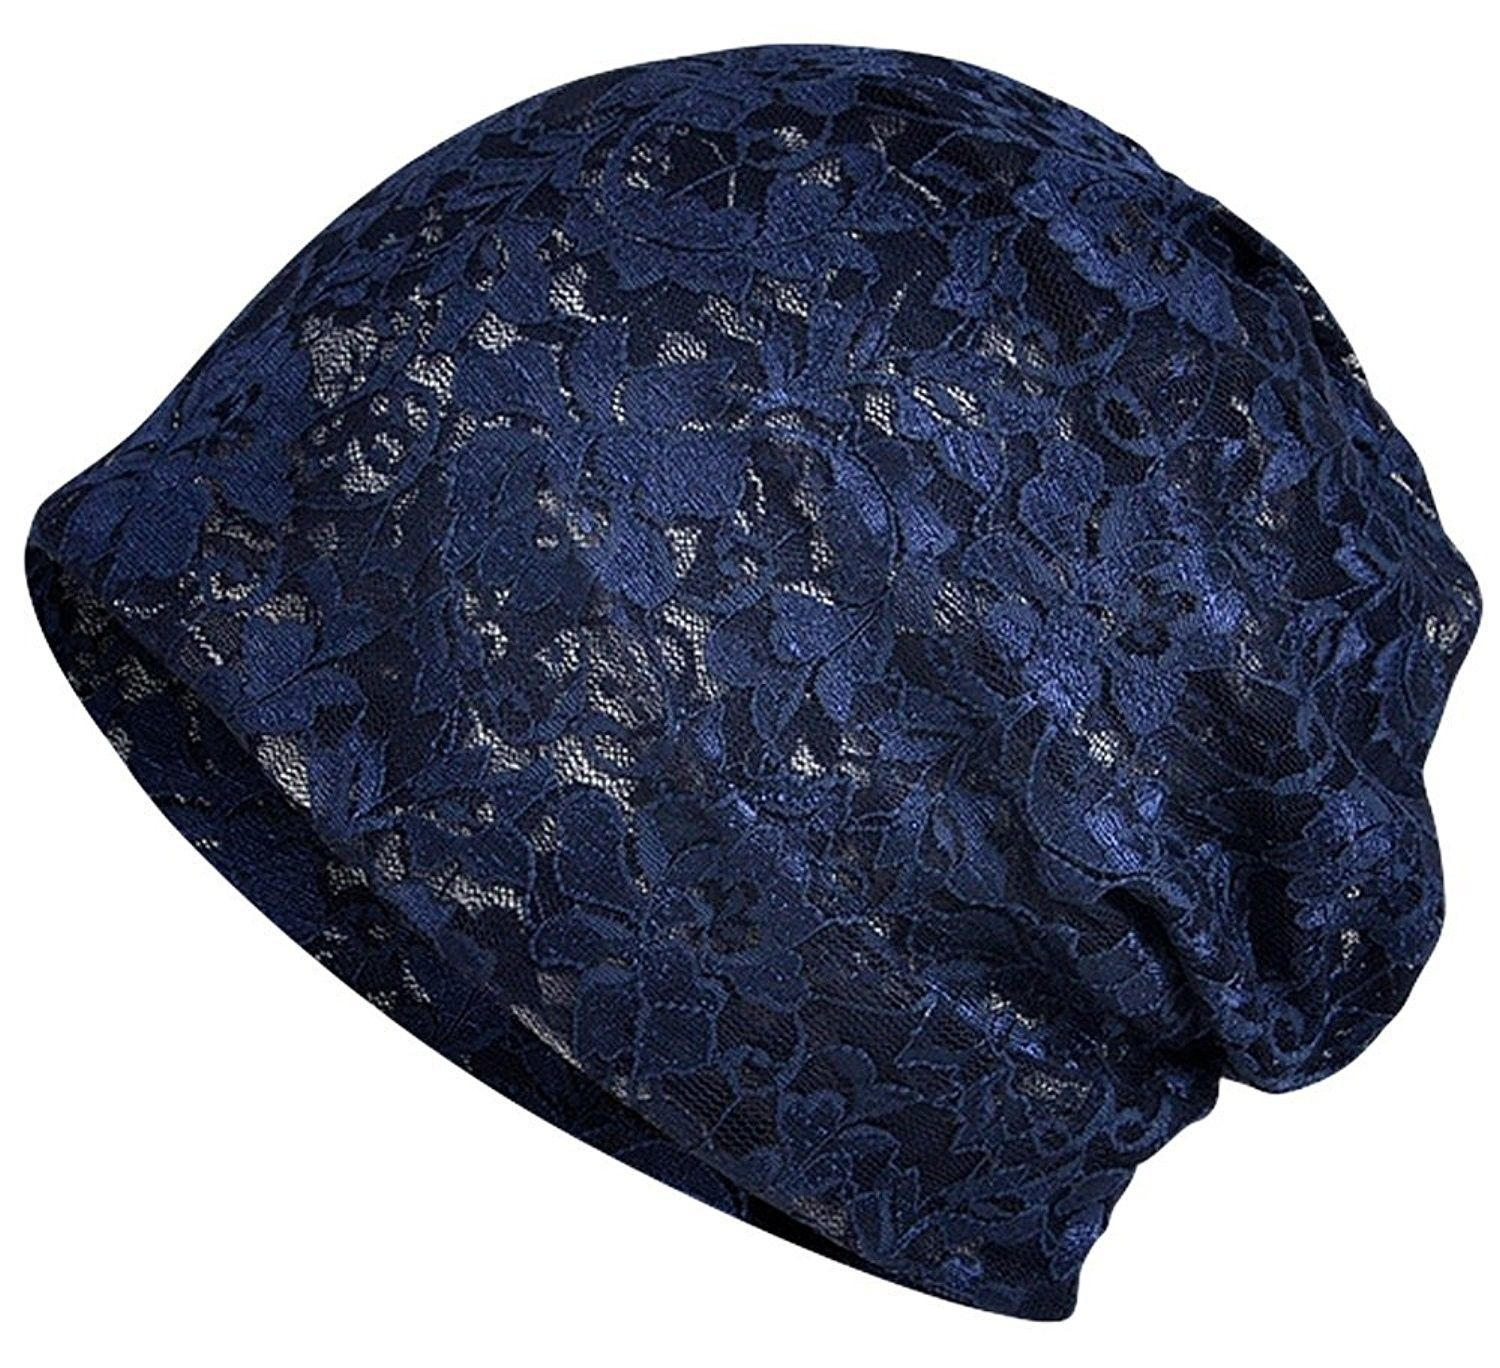 Womenus Lace Slouchy Beanie Chemo Hat Cap for Cancer Patients B